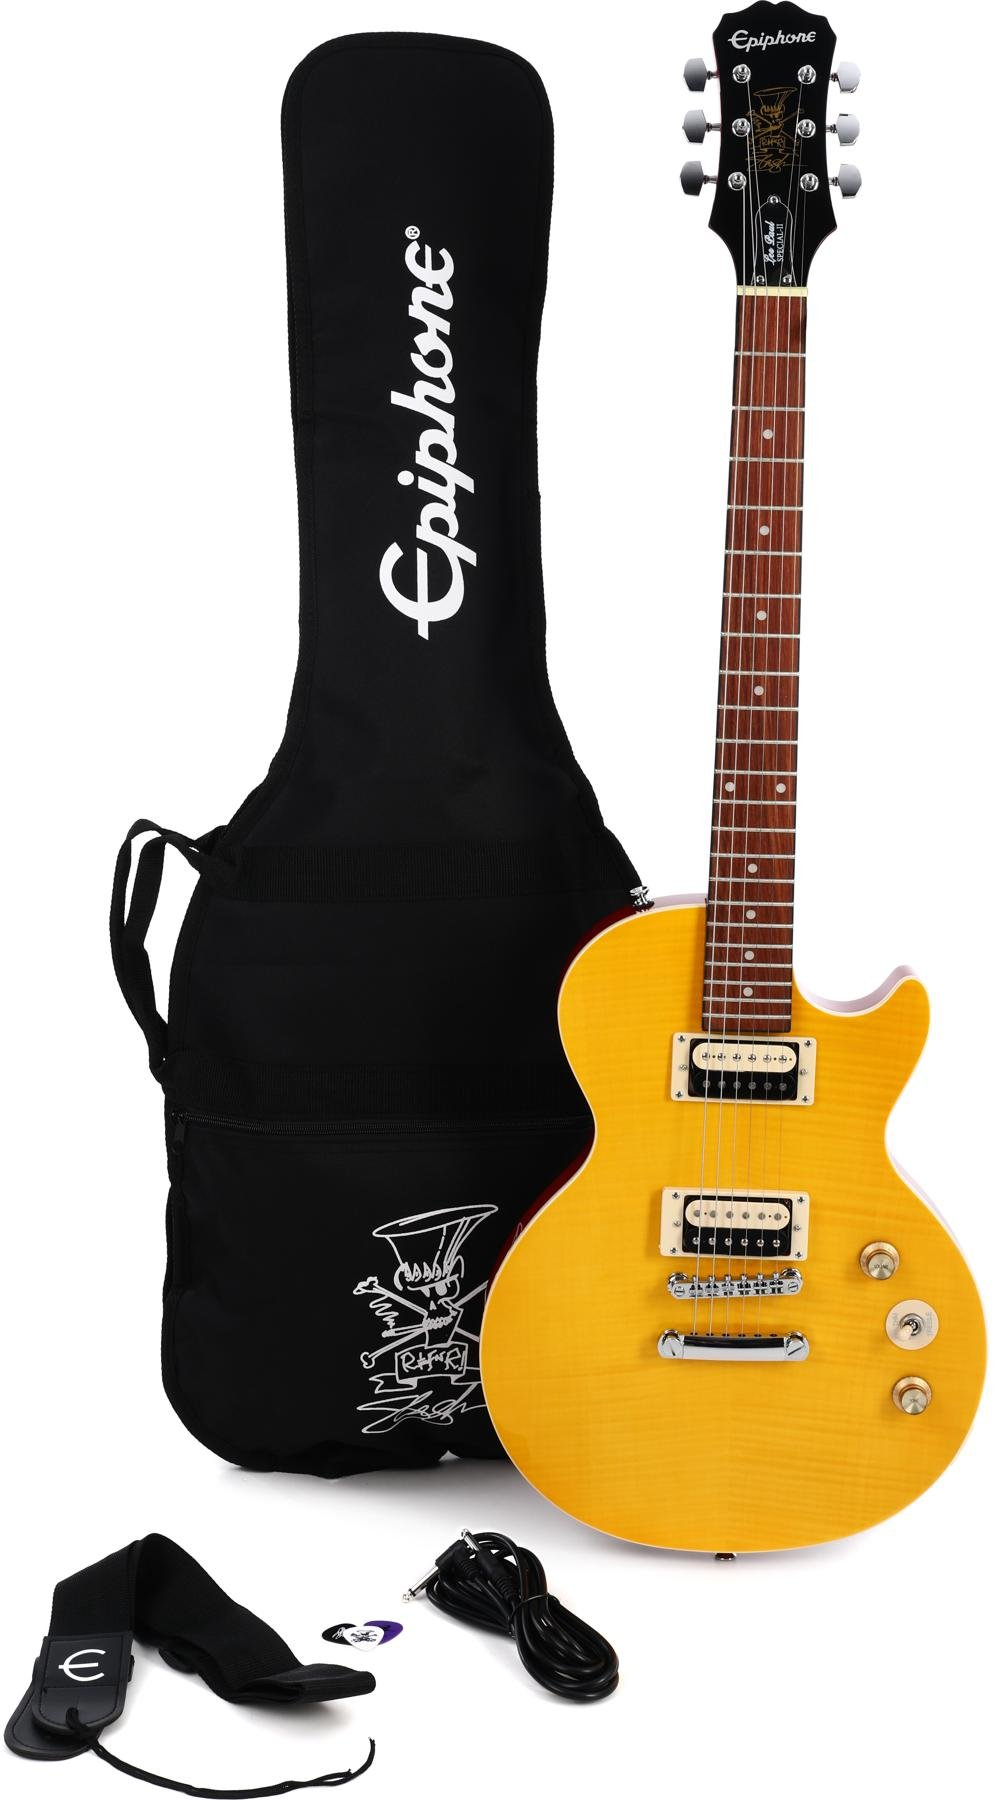 Epiphone Slash Afd Les Paul Special Ii Outfit Appetite Amber Options For Wiring Humbuckers Boxofknobs